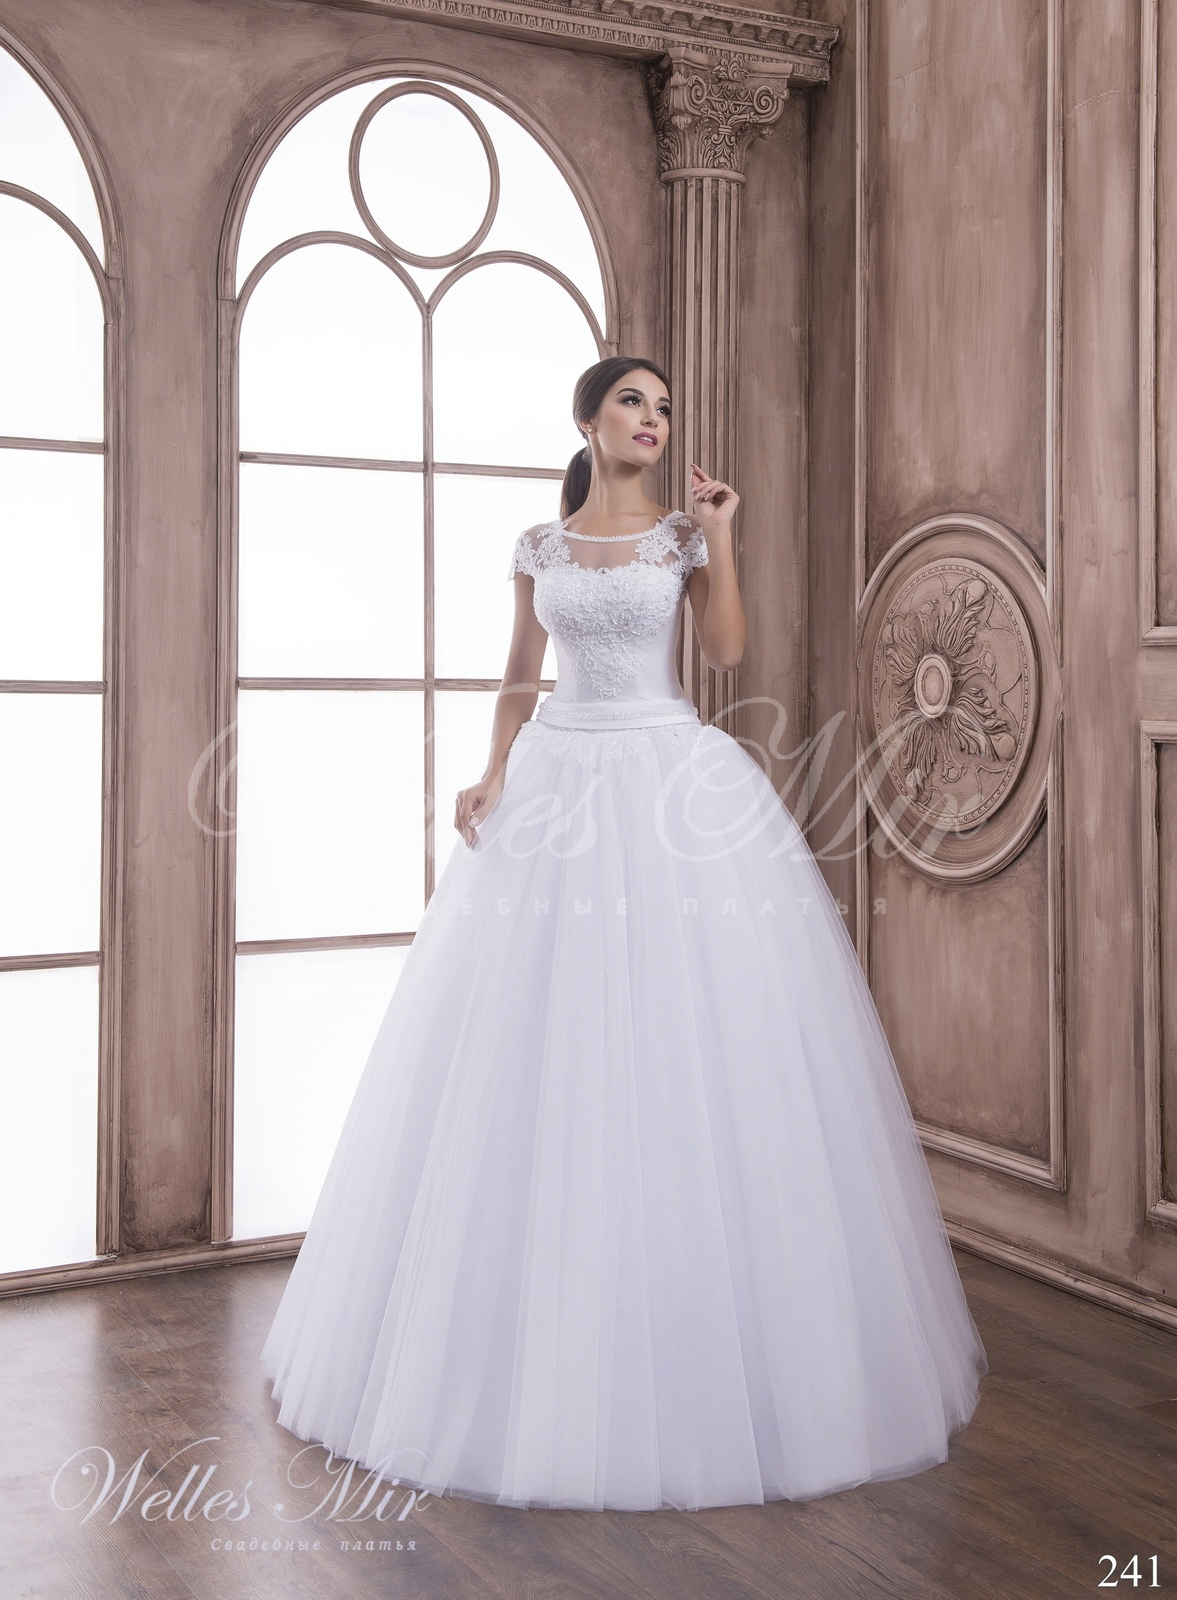 Wedding dresses 241